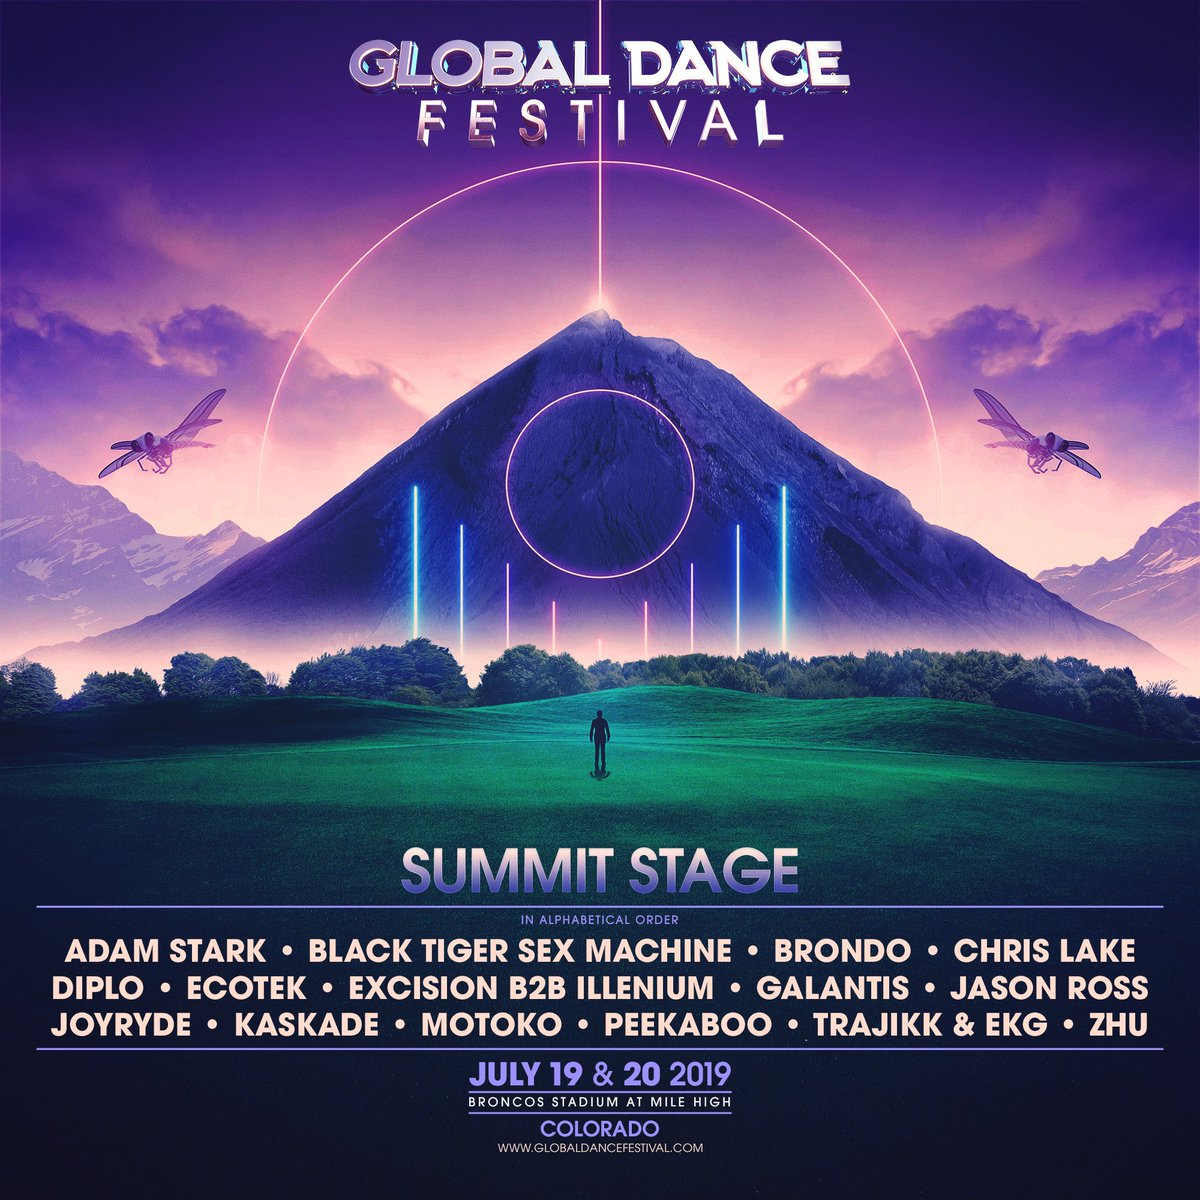 The Global Dance Festival Sumit Stage lineup for 2019